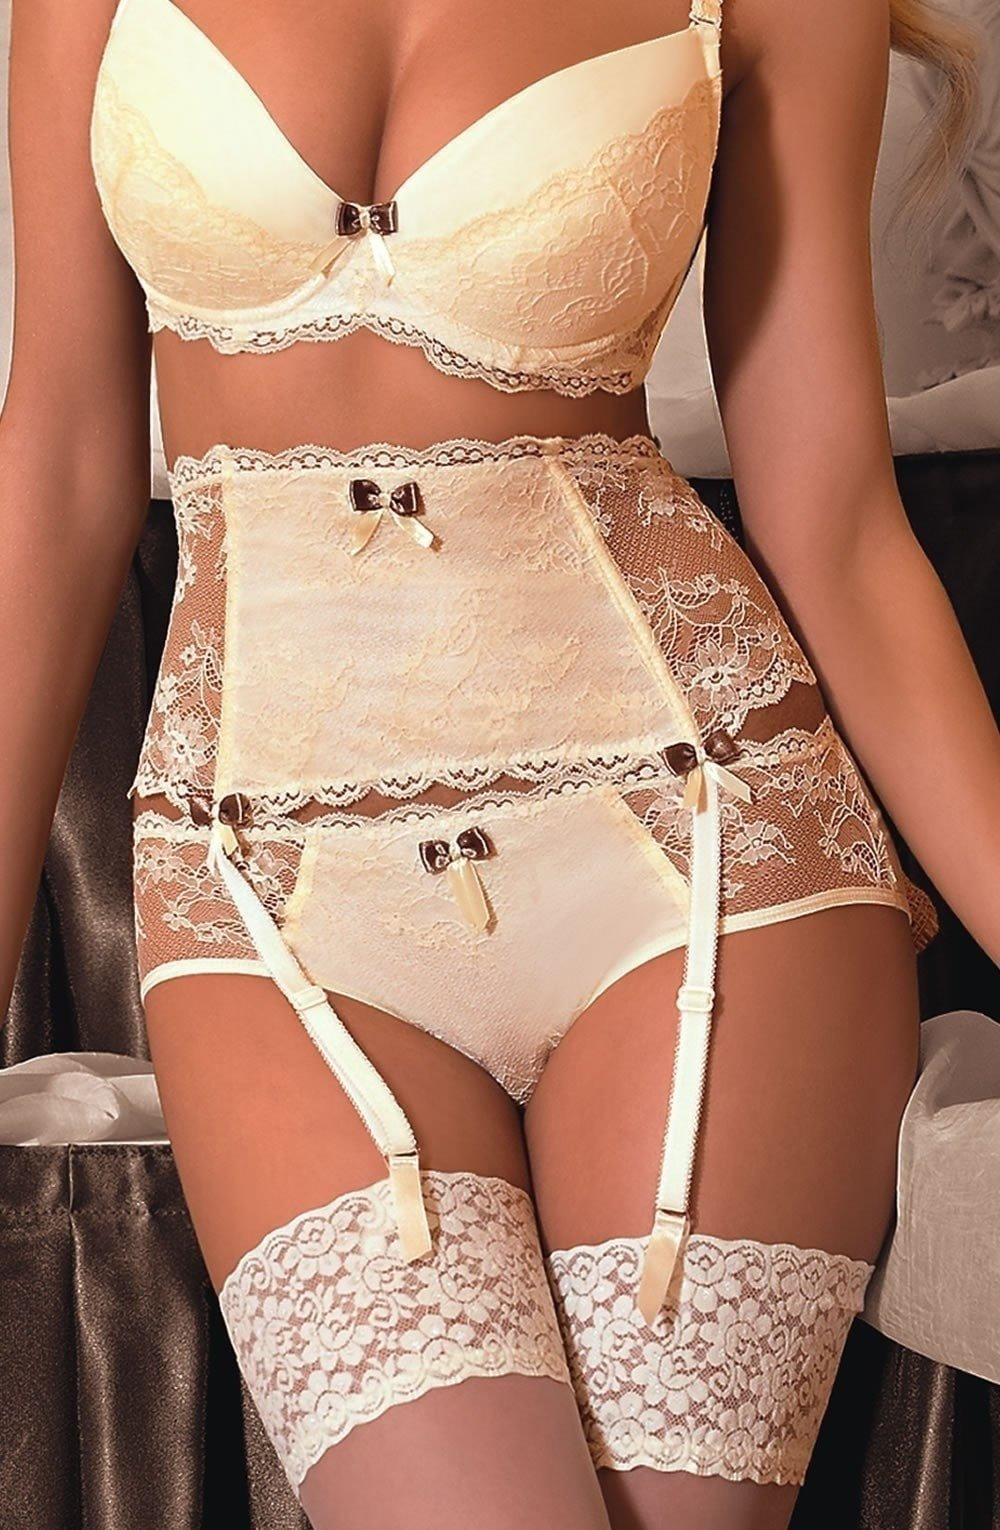 3a6d1a6e4e2 Roza Fifi Suspender Belt (Ivory) - Suspender Belts - Roza - Charm and Lace